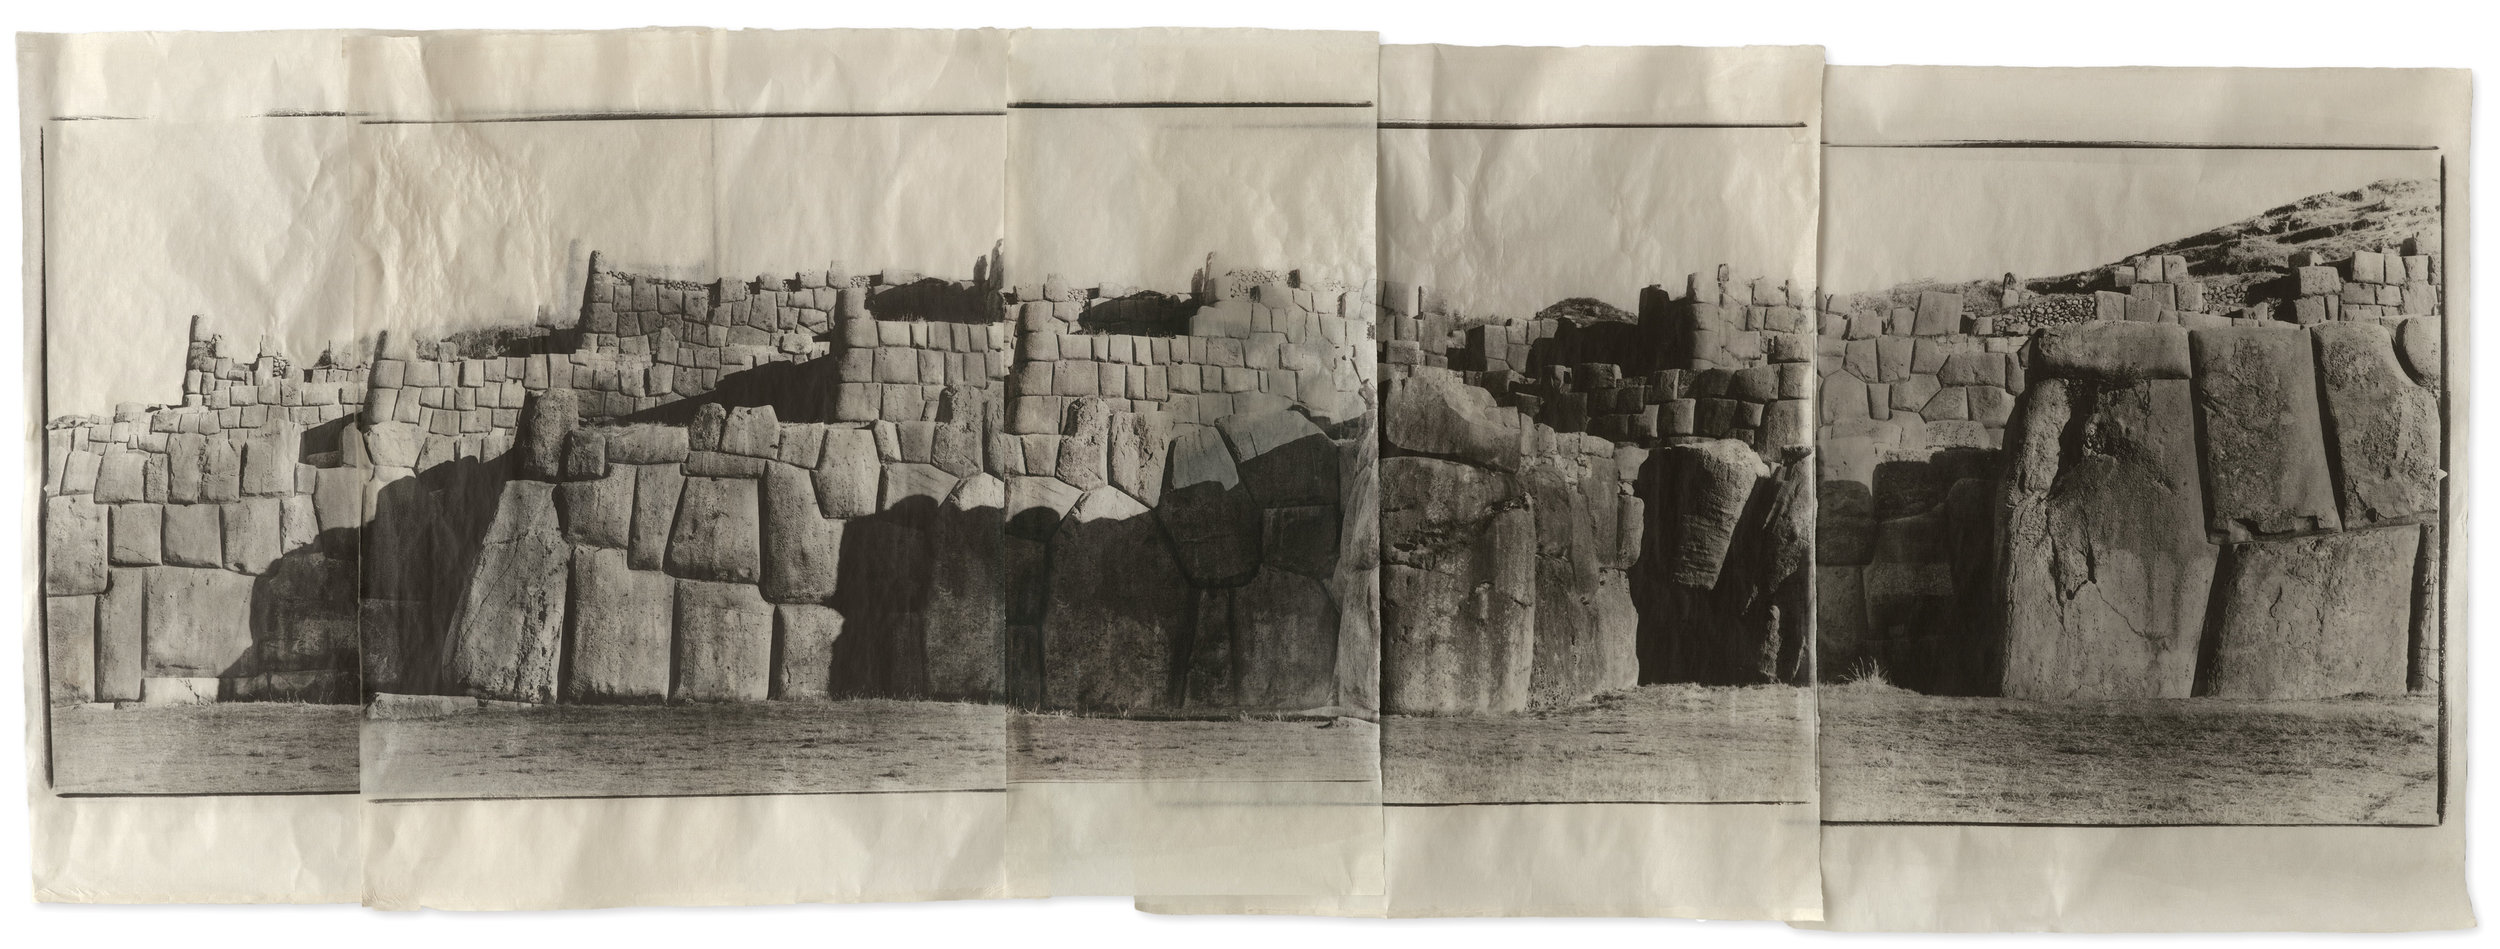 Sacsayhuaman, Cusco, Peru, 2003.© Jean Pagliuso; Courtesy of the artist and Mary Ryan Gallery, New York